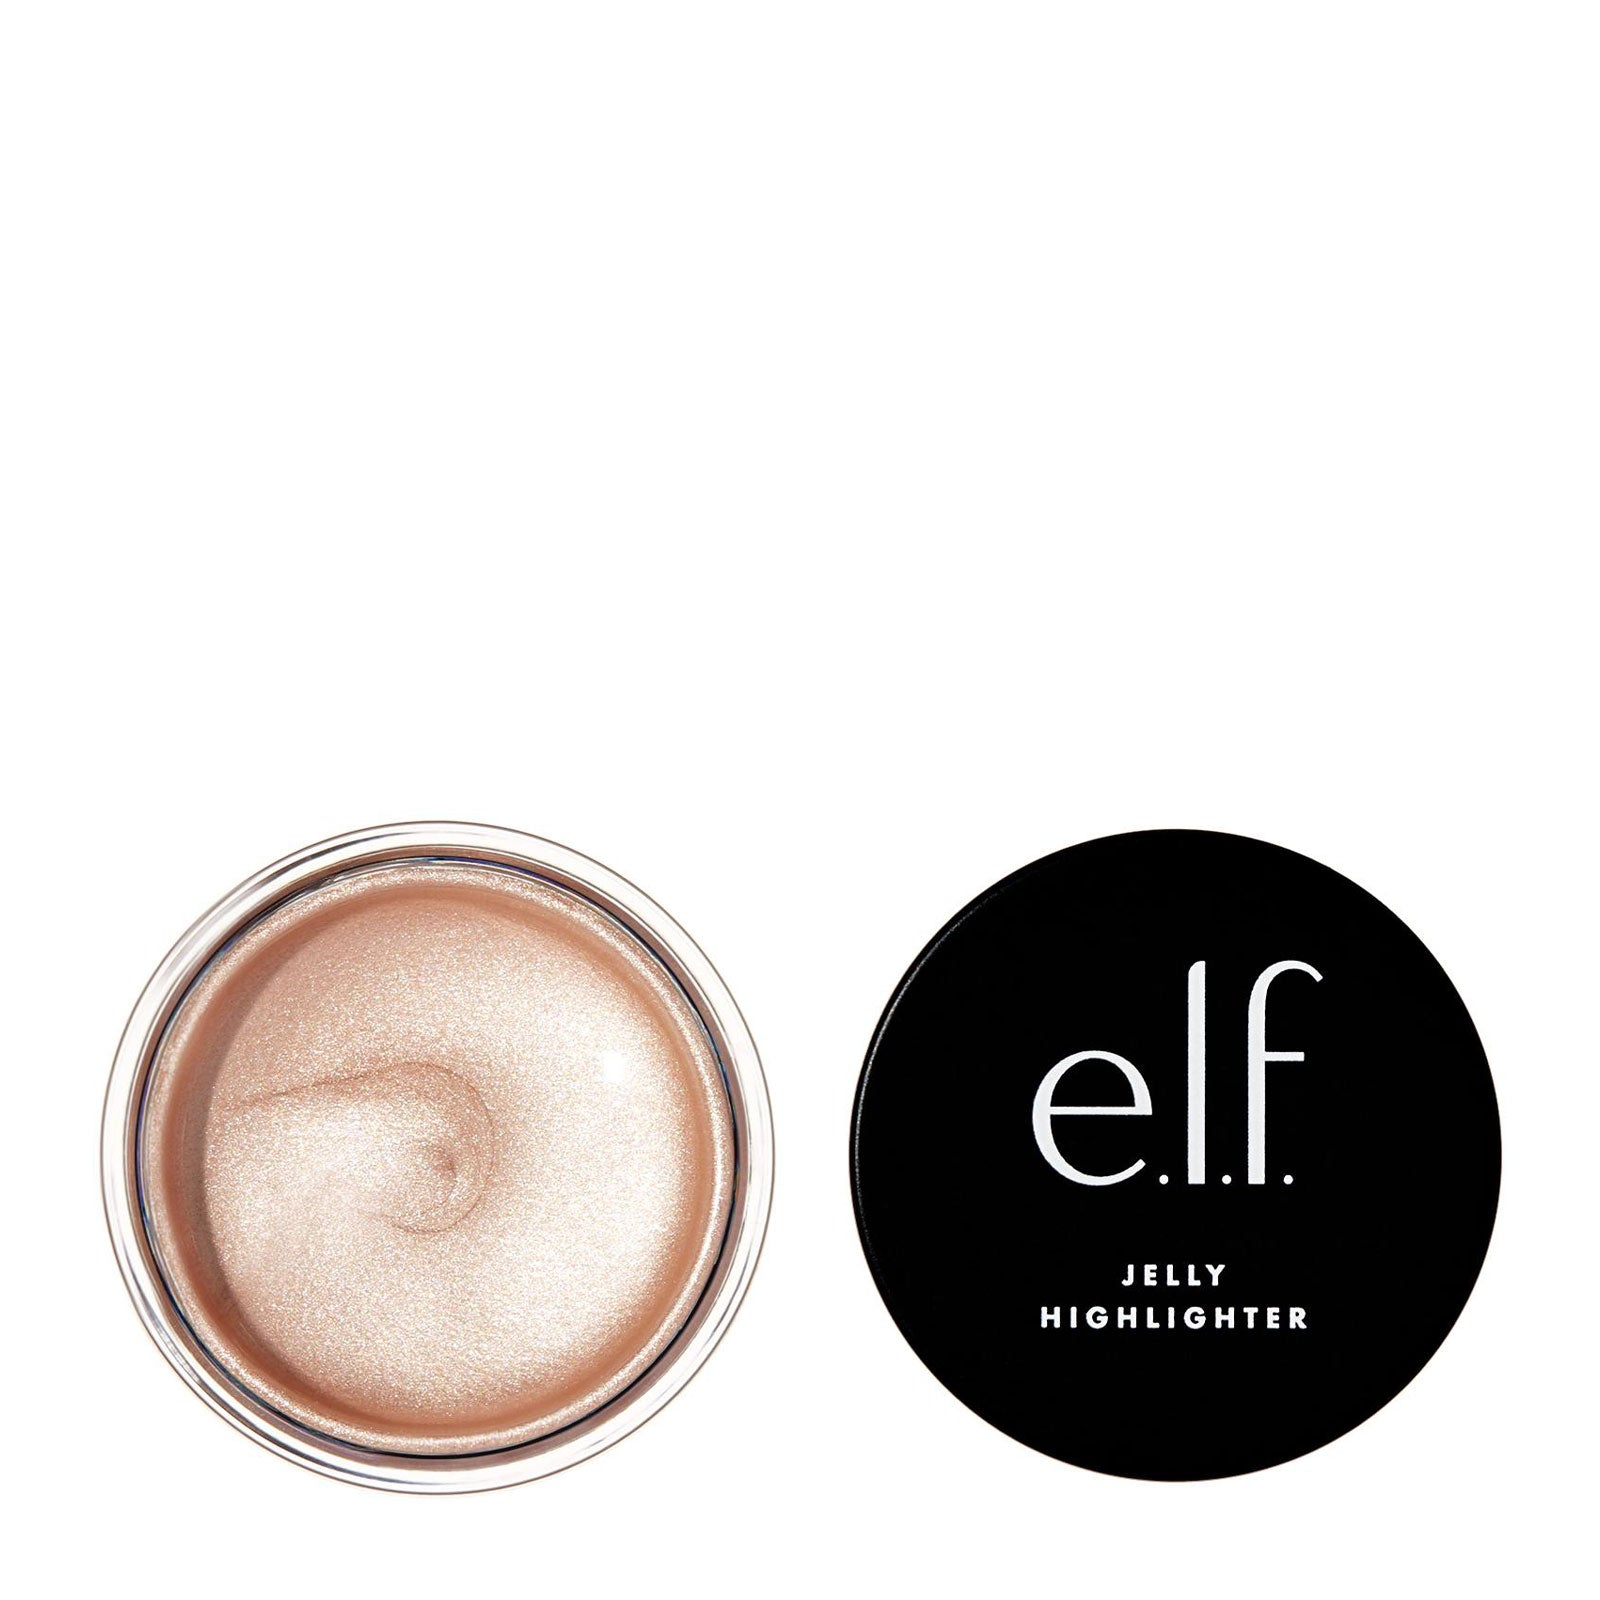 e.l.f. Jelly Highlighter 13ml